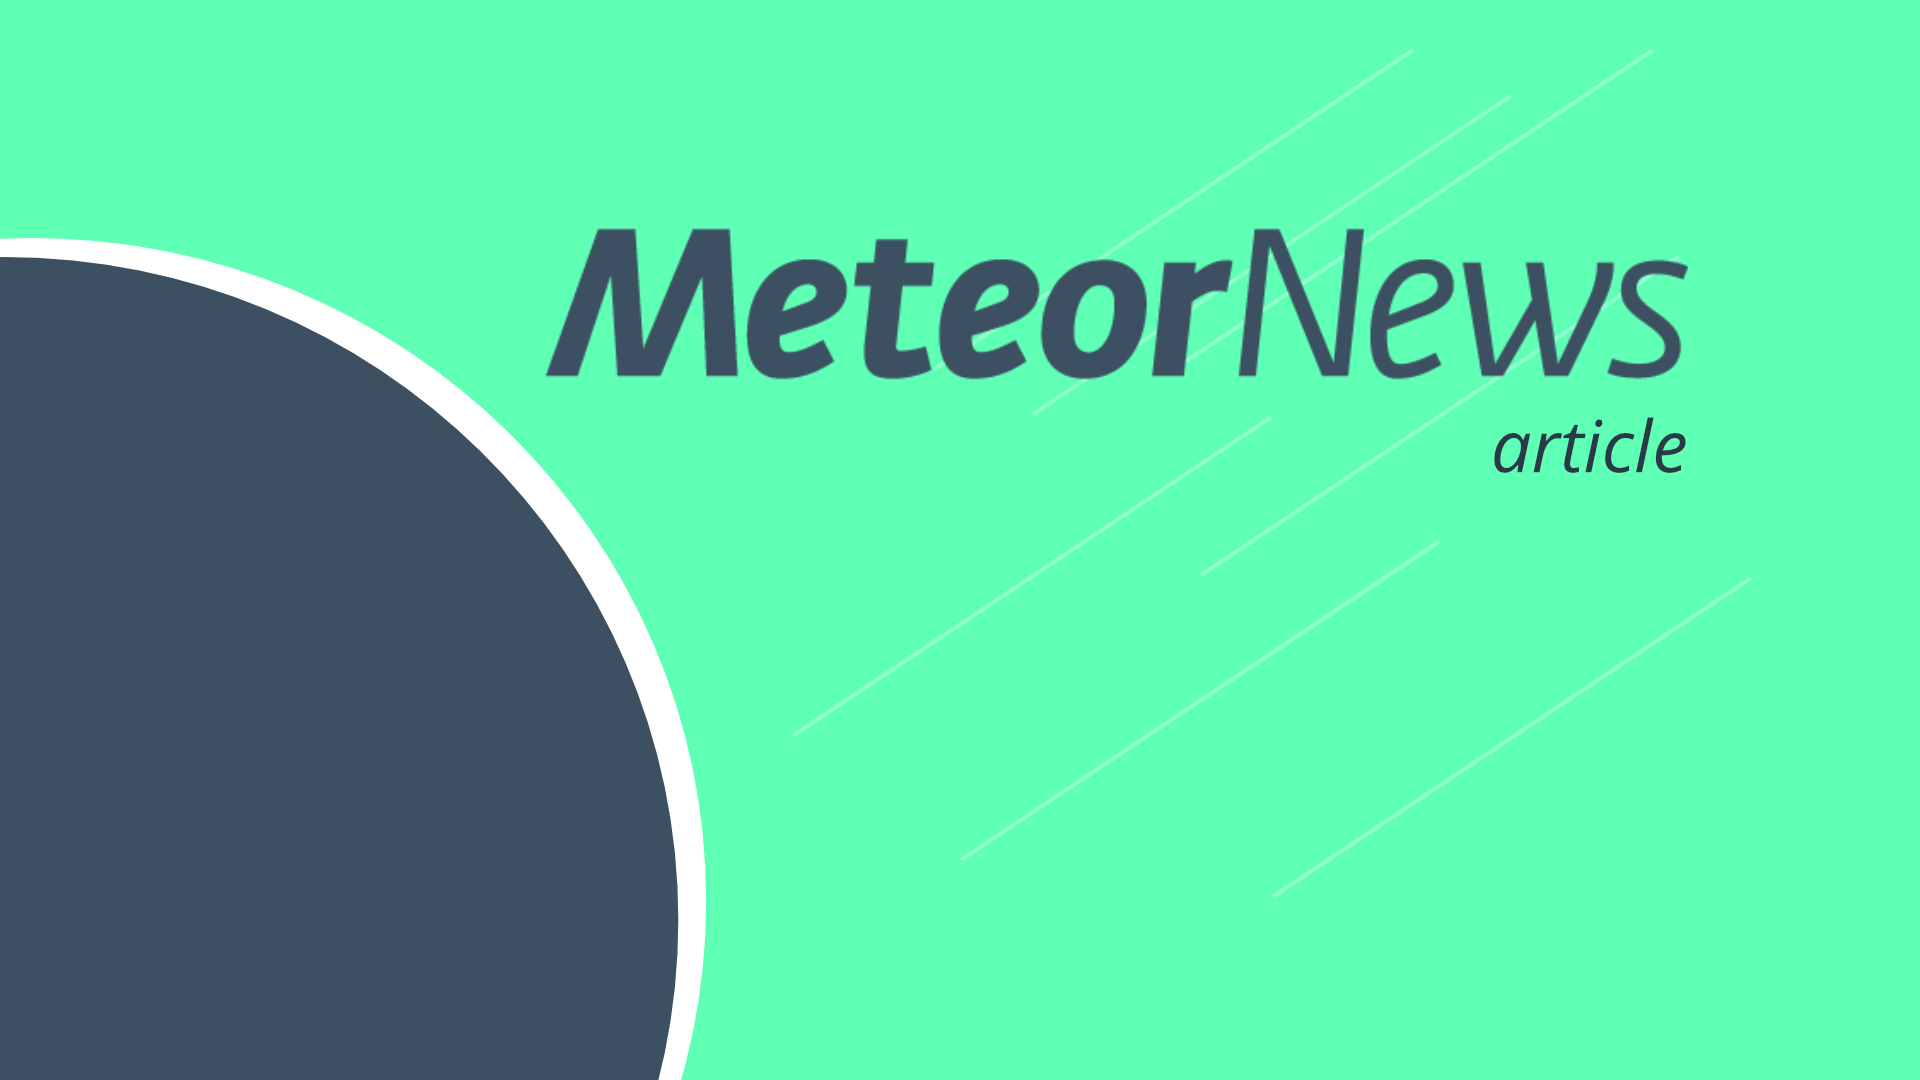 Meteor Activity Outlook for 11-17 November 2017